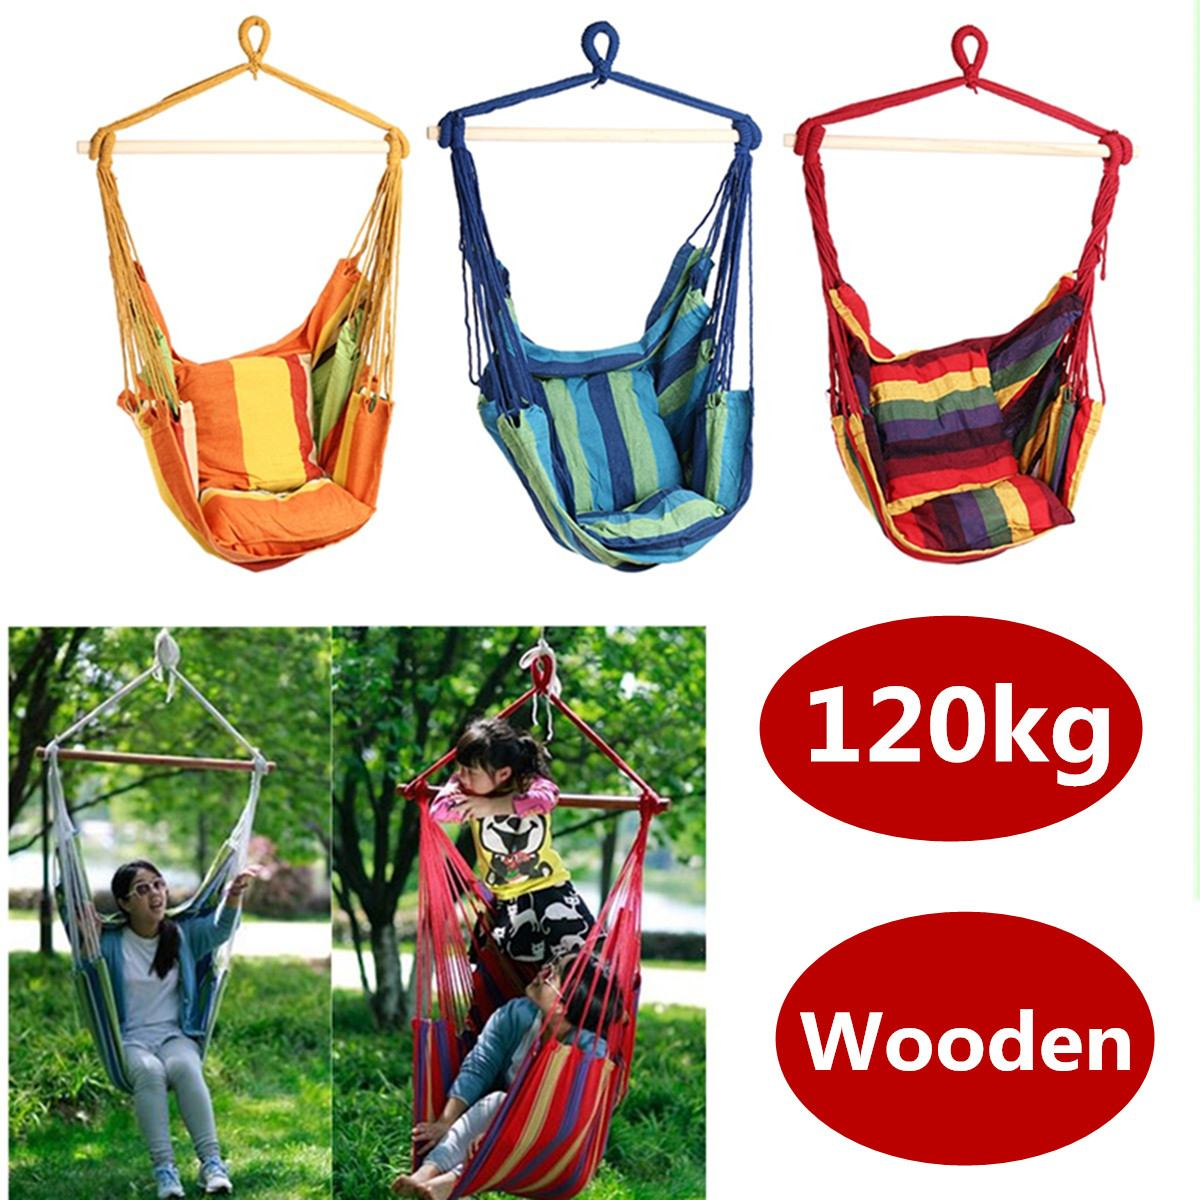 Outdoor Canvas Hammocks Chair Swing Hanging Chair Hammock  Garden Furniture Chair Relax Soft Indoor Garden Camping SwingOutdoor Canvas Hammocks Chair Swing Hanging Chair Hammock  Garden Furniture Chair Relax Soft Indoor Garden Camping Swing